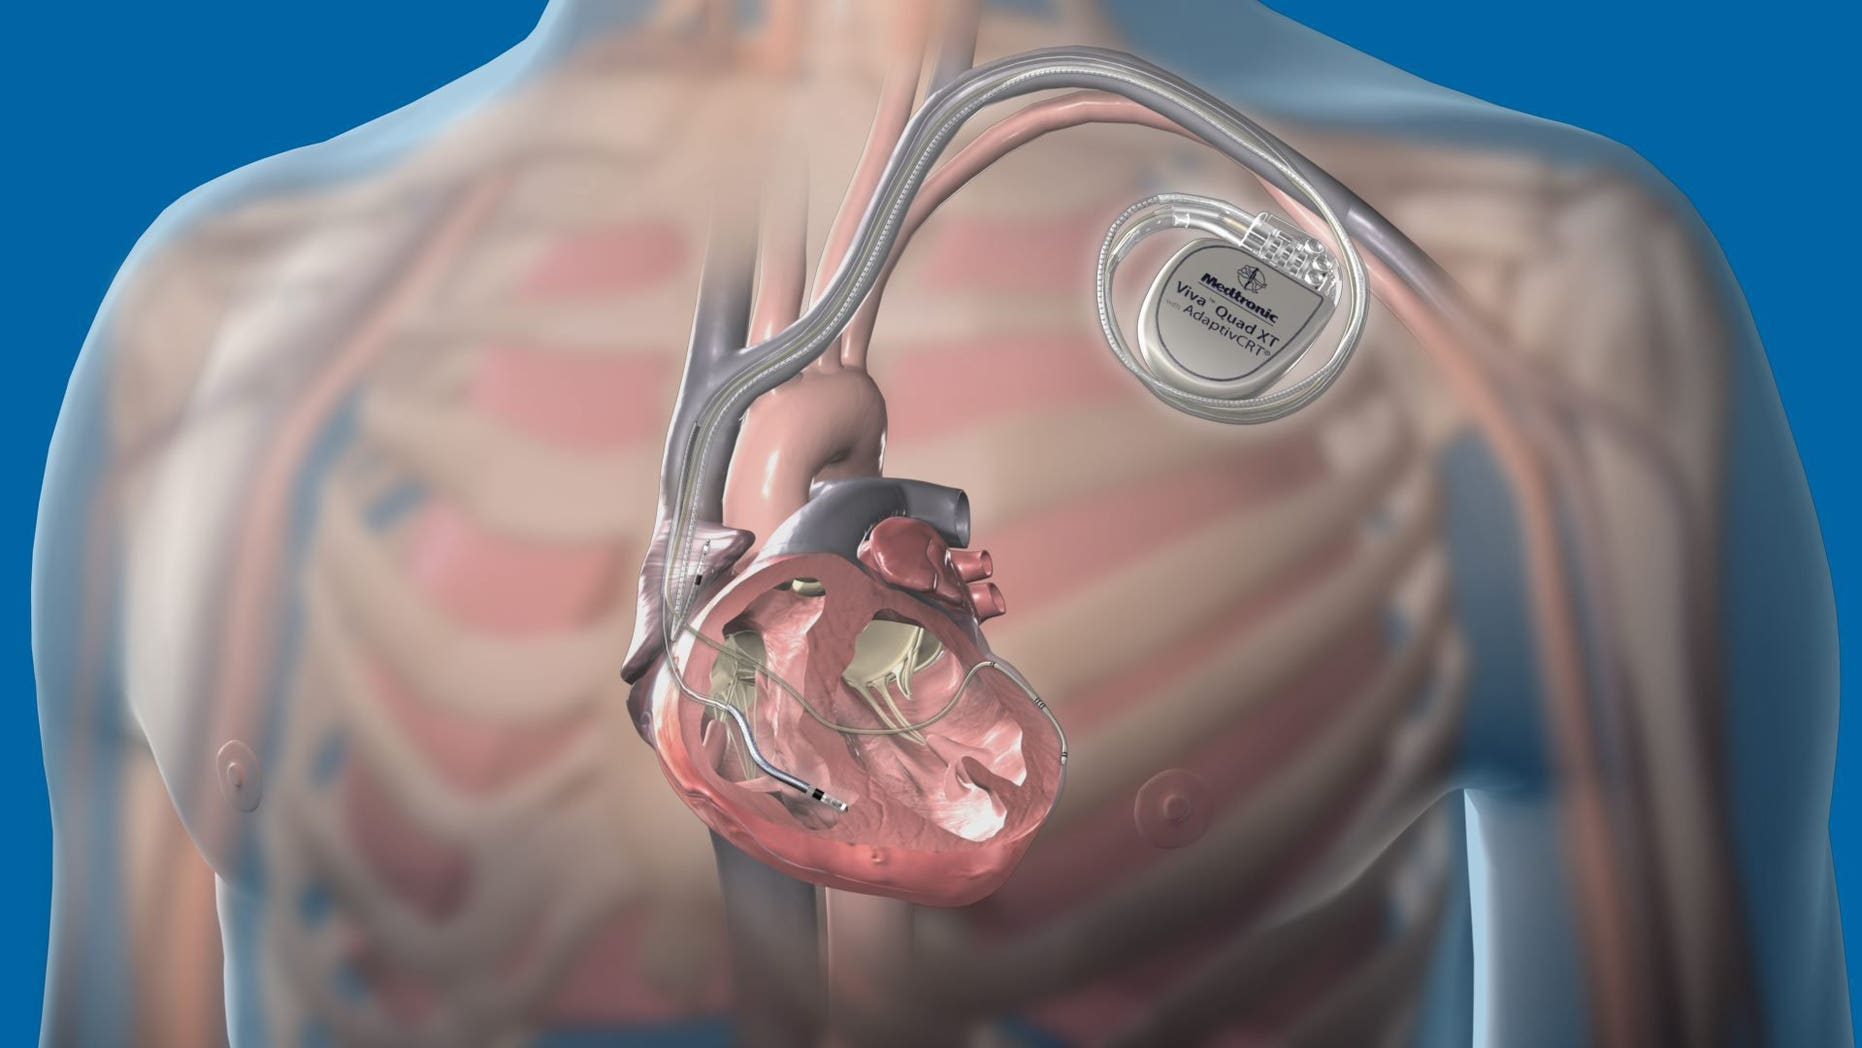 A new report in the Journal of the American College of Cardiology says there is a possibility that pacemakers and other electrical medical devices could be hacked.